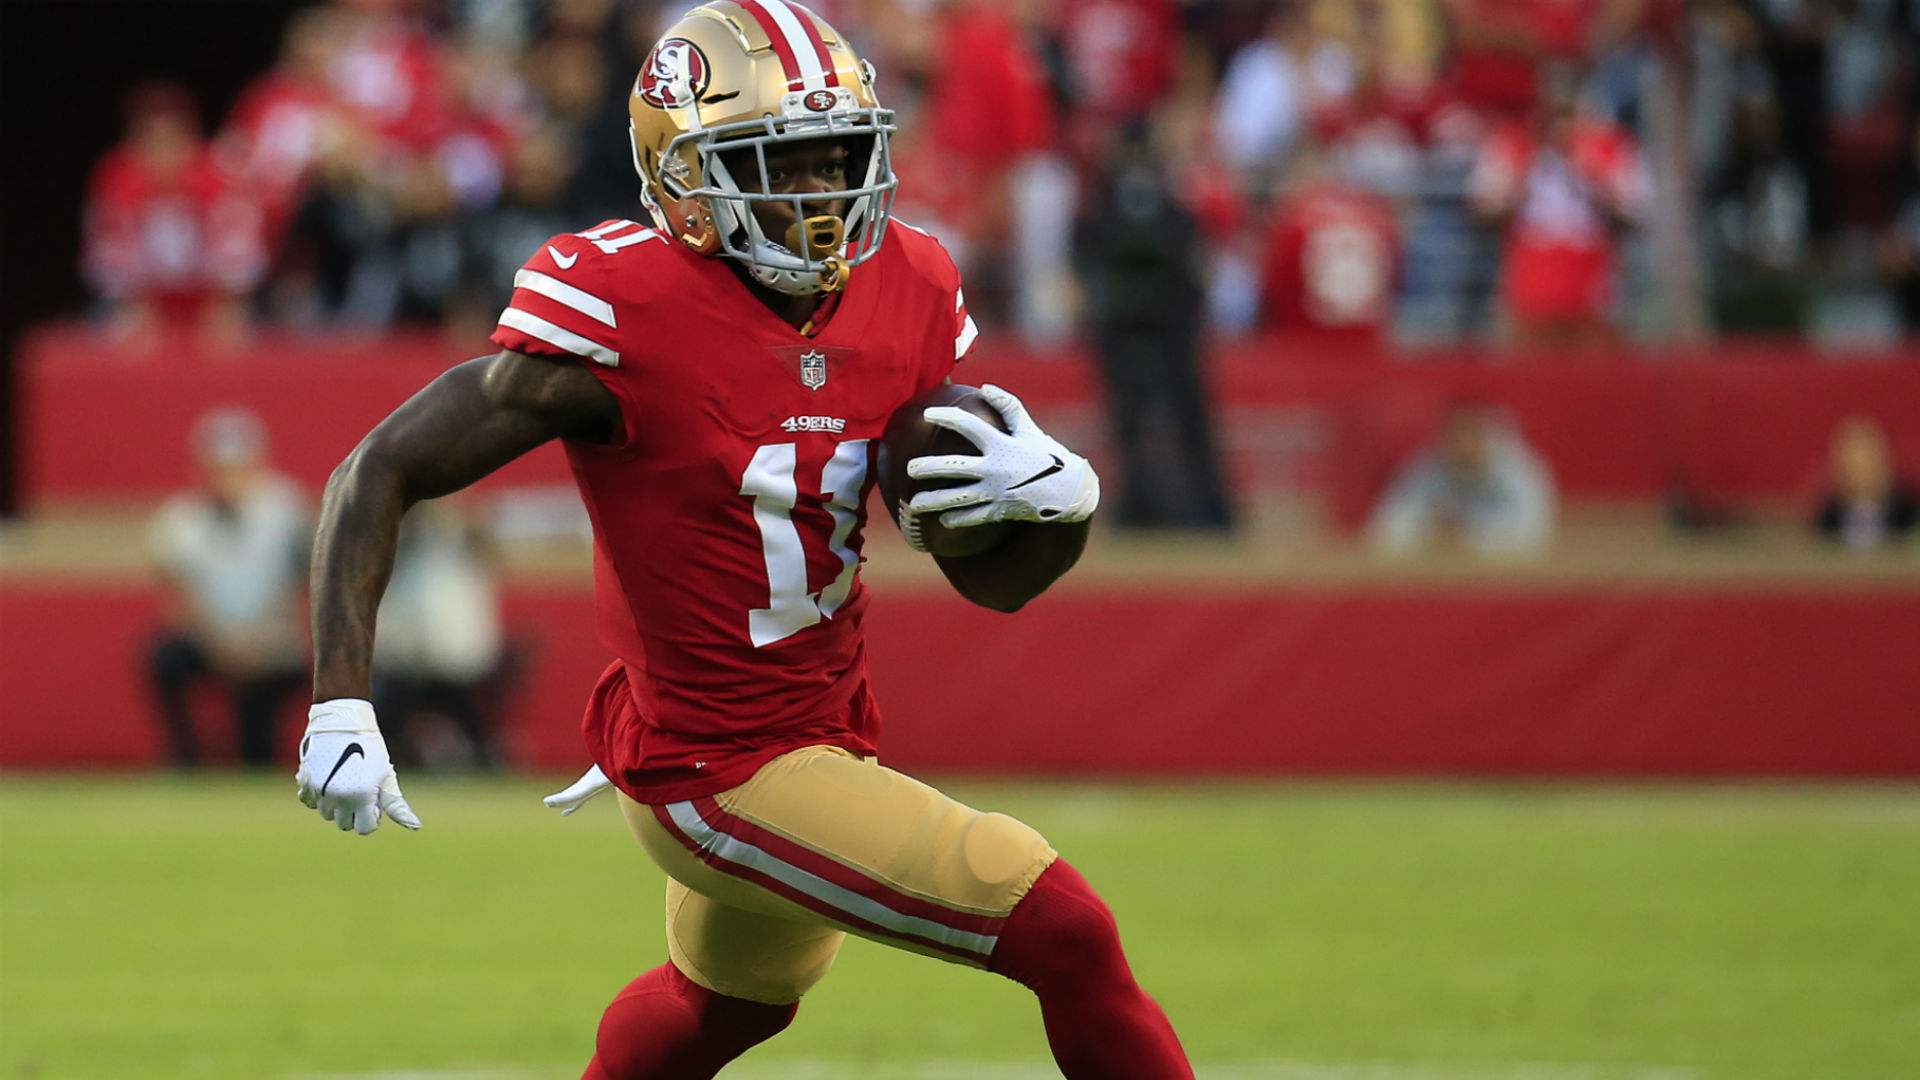 49ers' Marquise Goodwin doubtful vs. Buccaneers due to personal matter